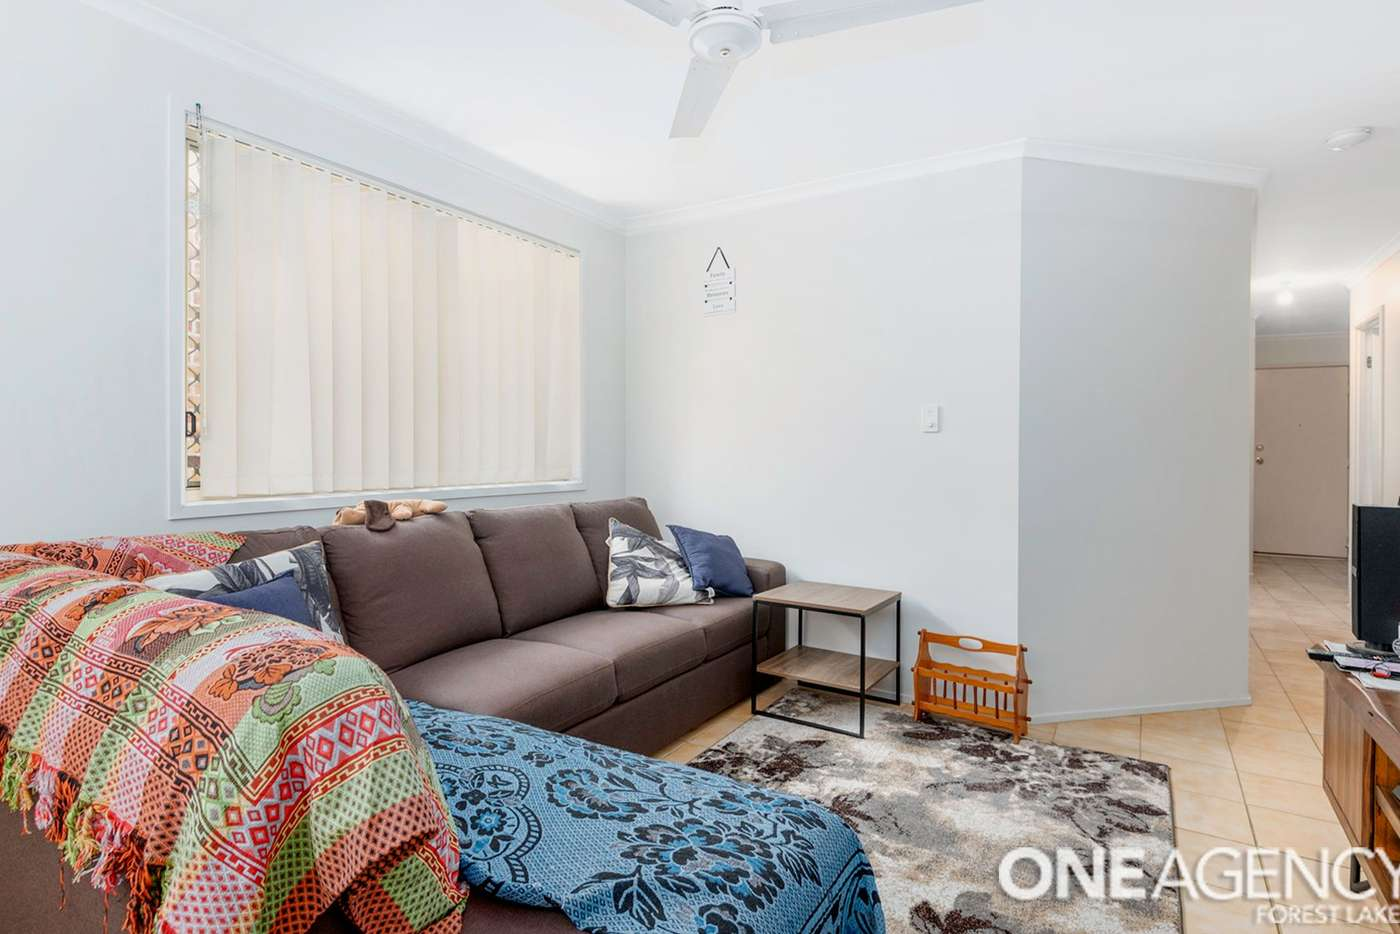 Fifth view of Homely house listing, 10 McKenzie Place, Forest Lake QLD 4078